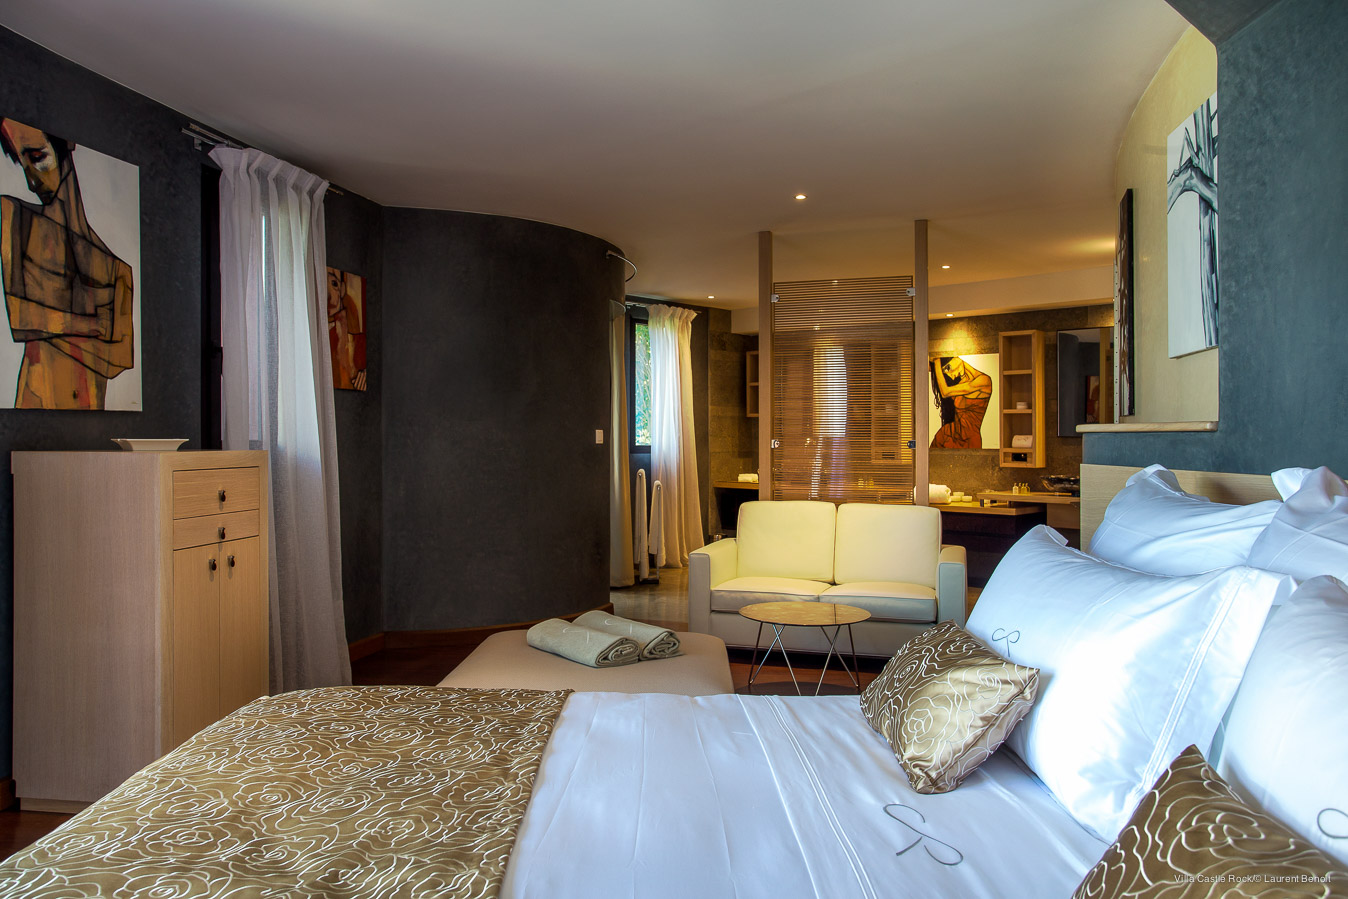 Villa Castle Rock - Magnificent Villa for Rent Situated on the Hillside of Lorient St Barth - Bedroom